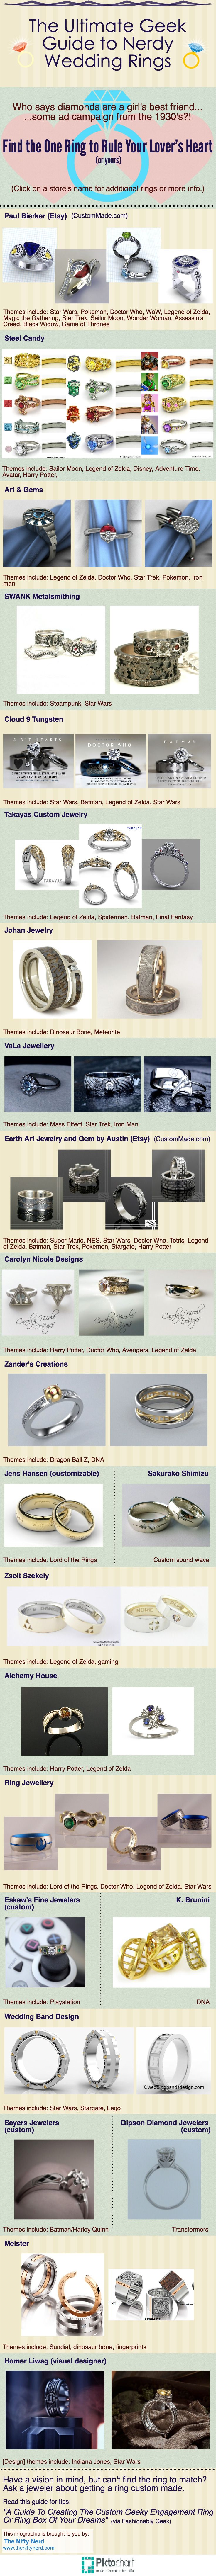 zelda geeky house set harry batman wedding geek potter rings ring piece zora engagement